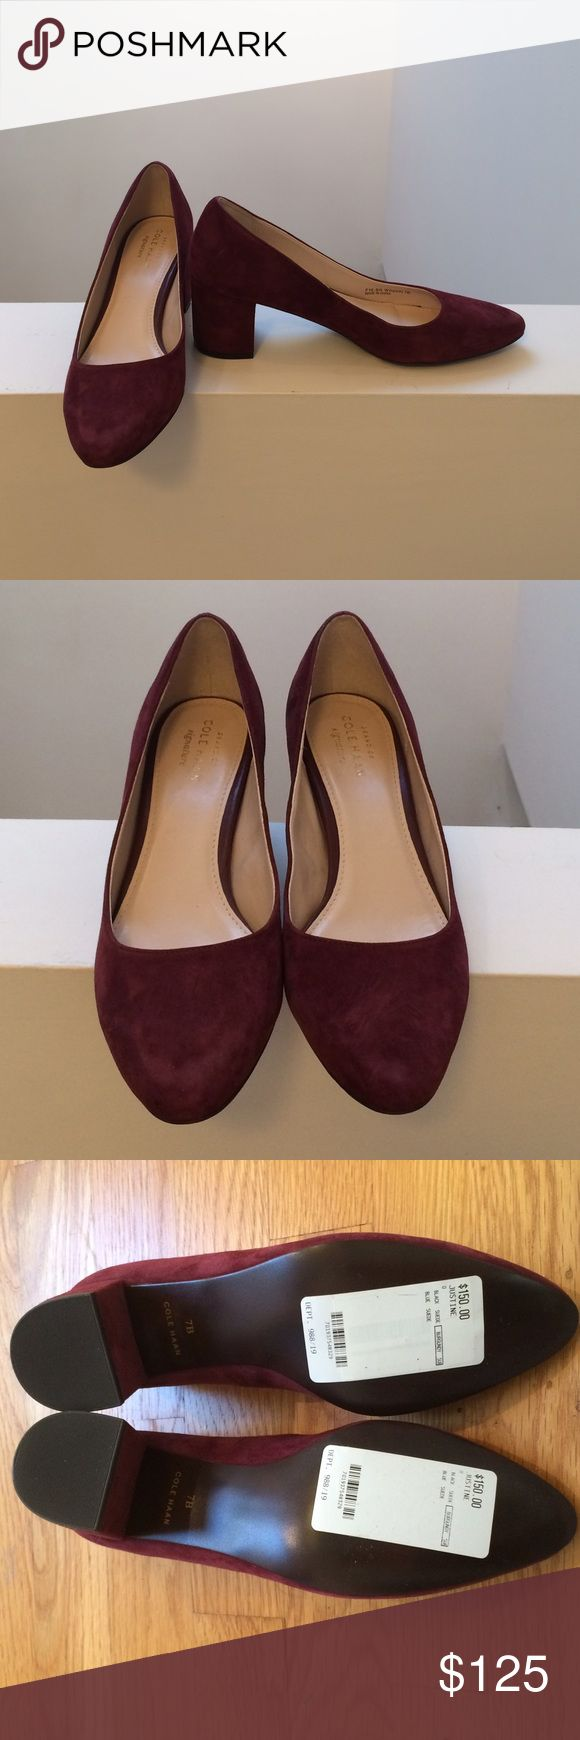 Cole Haan Justine Pump Brand new in box. Cole Haan Justine pump in tawny port suede. Never worn, just tried on. Cole Haan Shoes Heels